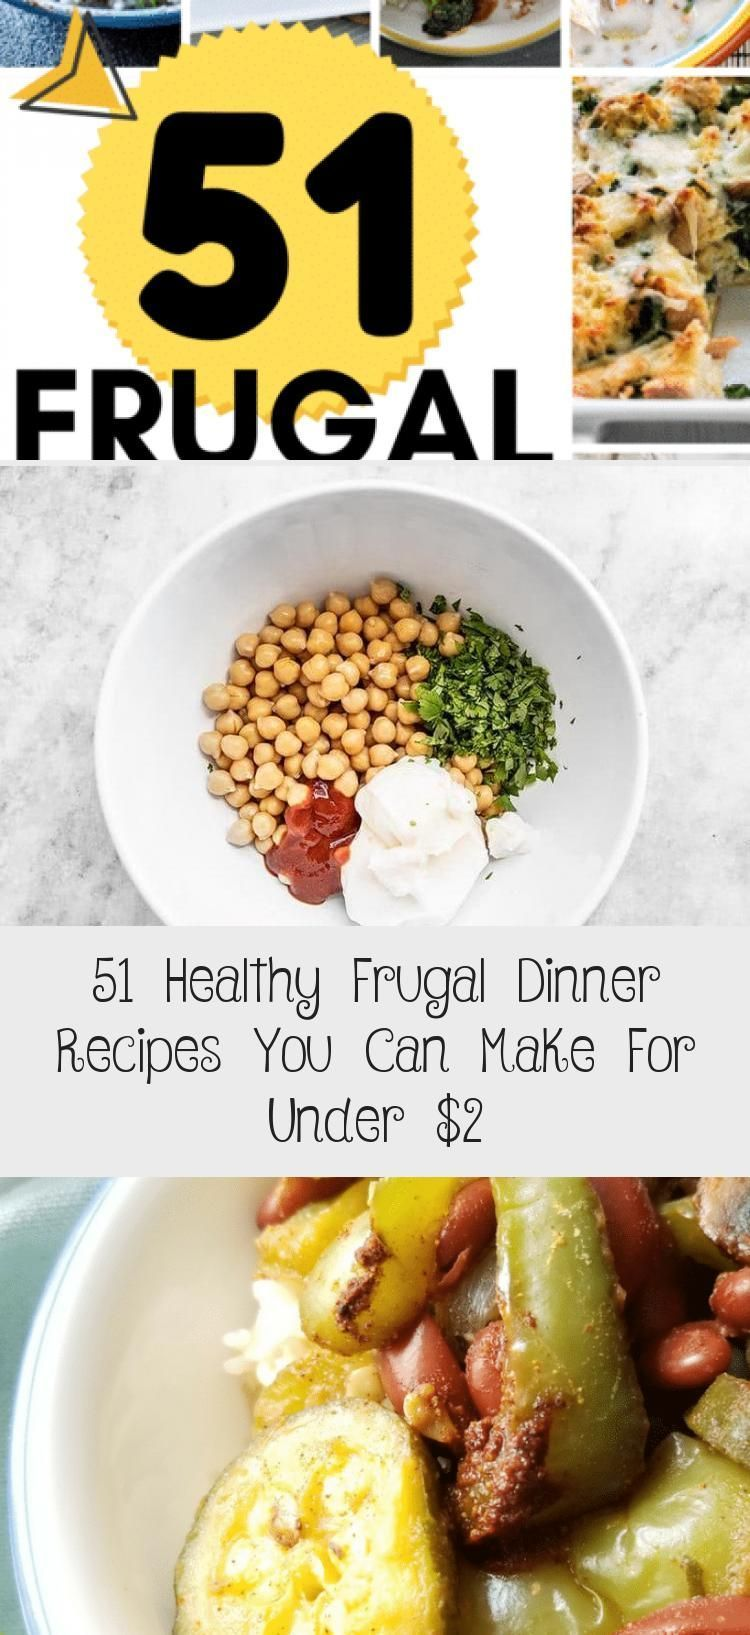 Dinner Frugal Healthy Healthy Recipes For College Students Recipe Dinner Frugal Healthy Healthy Recipes For Recipes Dinner Recipes Student Recipes